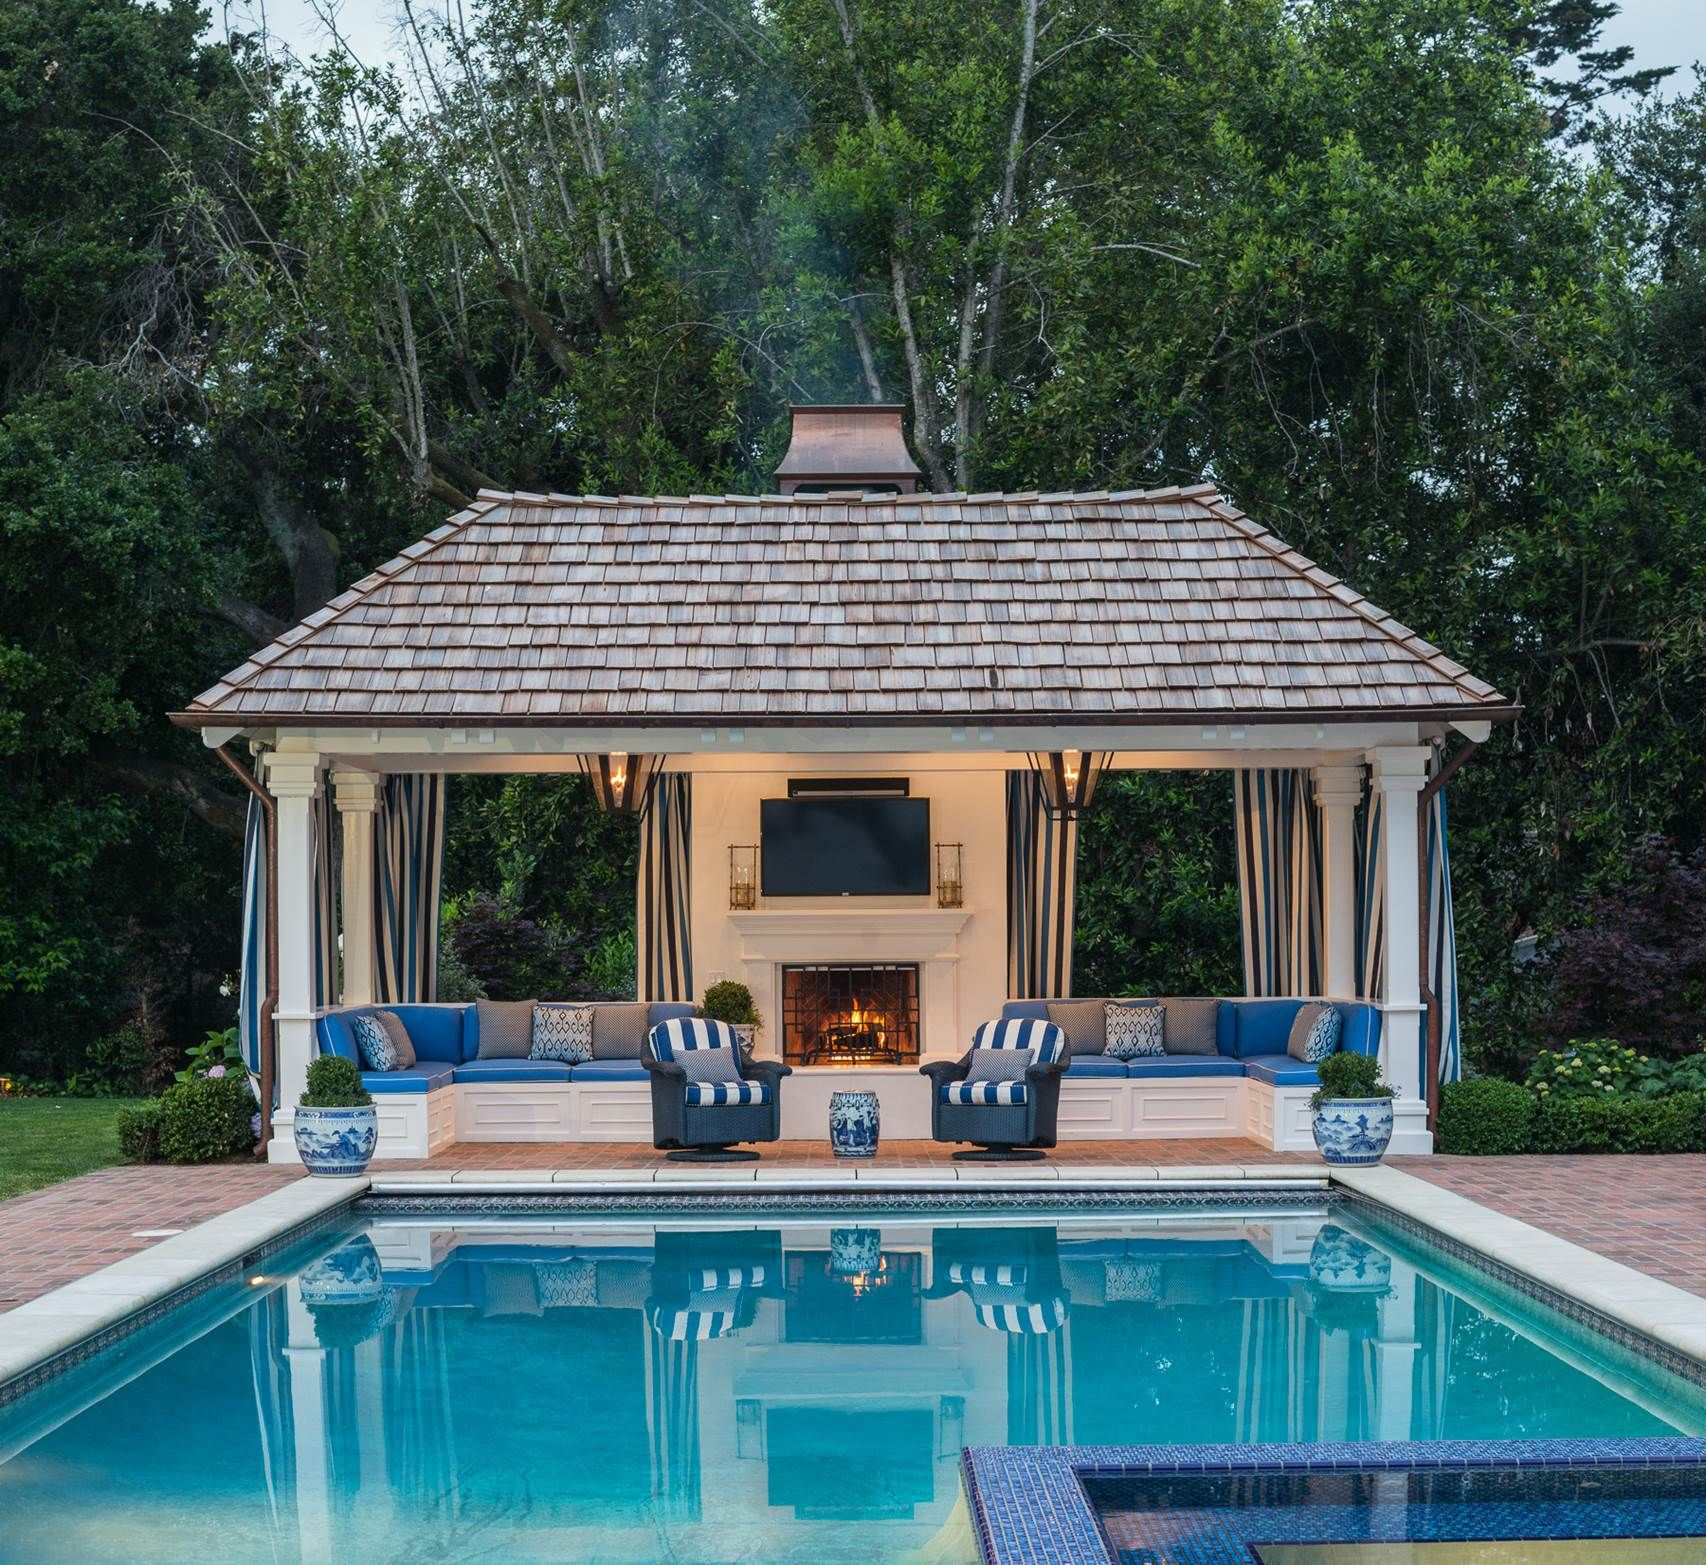 Home Plans With Pool House: Pin By Amy Underwood On Outdoor Spaces And Pools